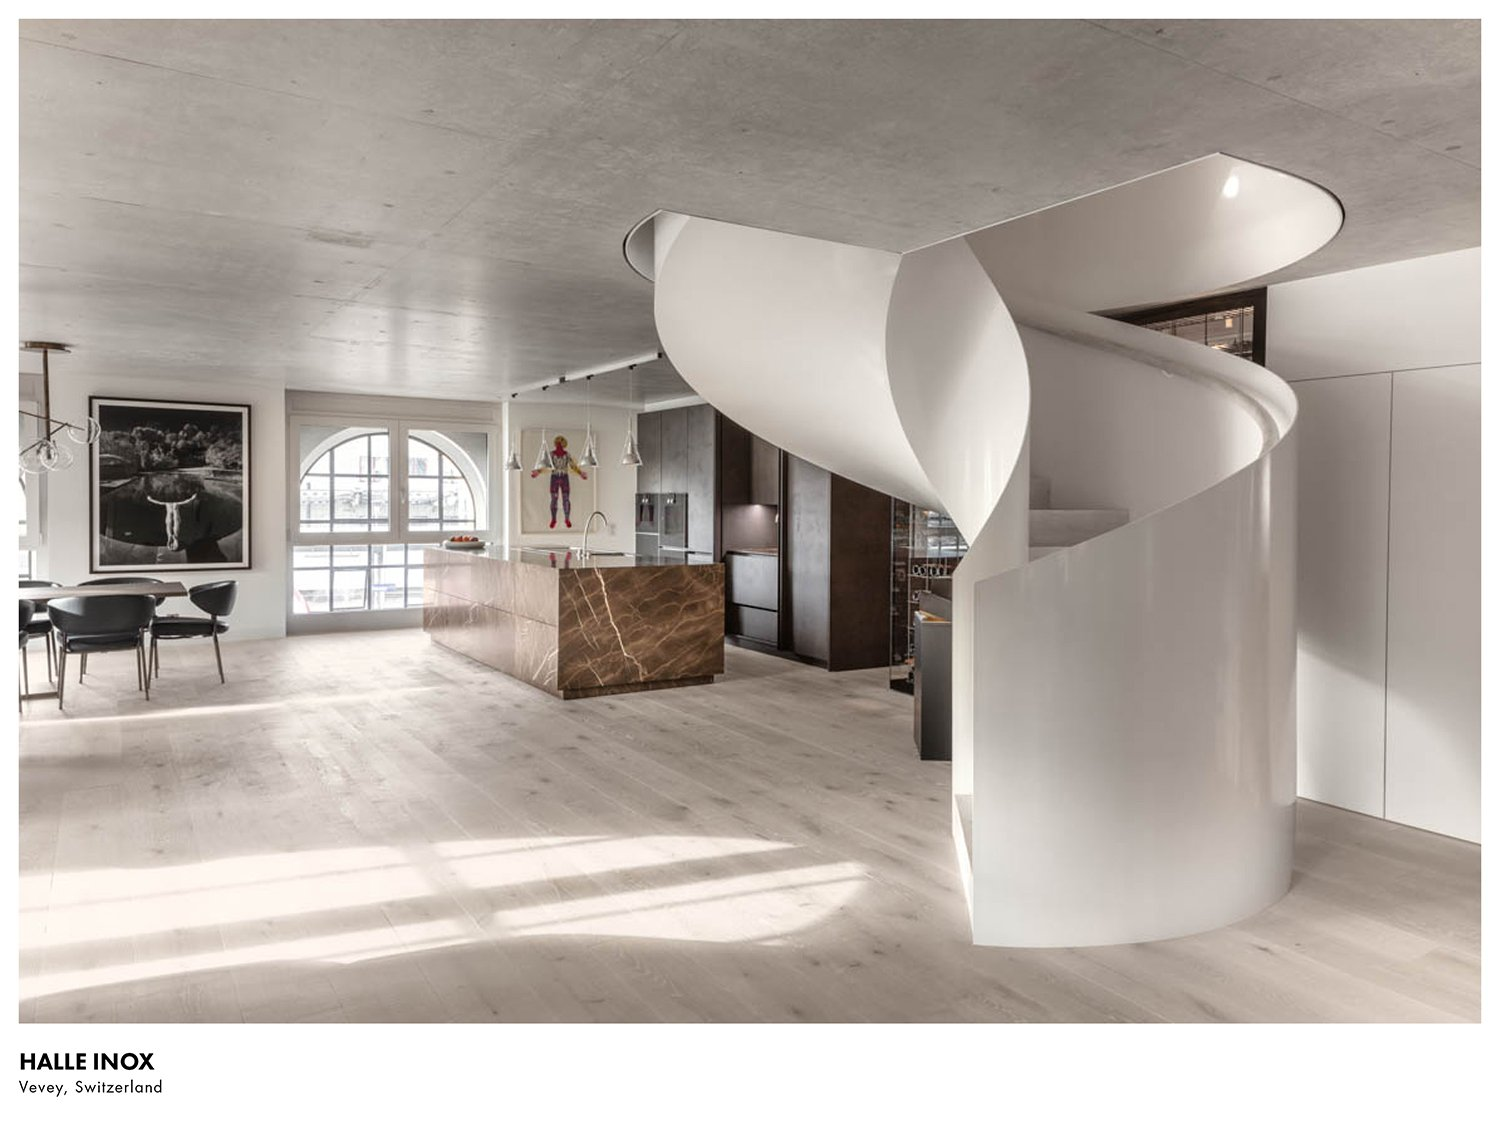 Located in the heart of Vevey, the 3-floor residence is set within the shell of an old tractor factory. Delphine Burtin}